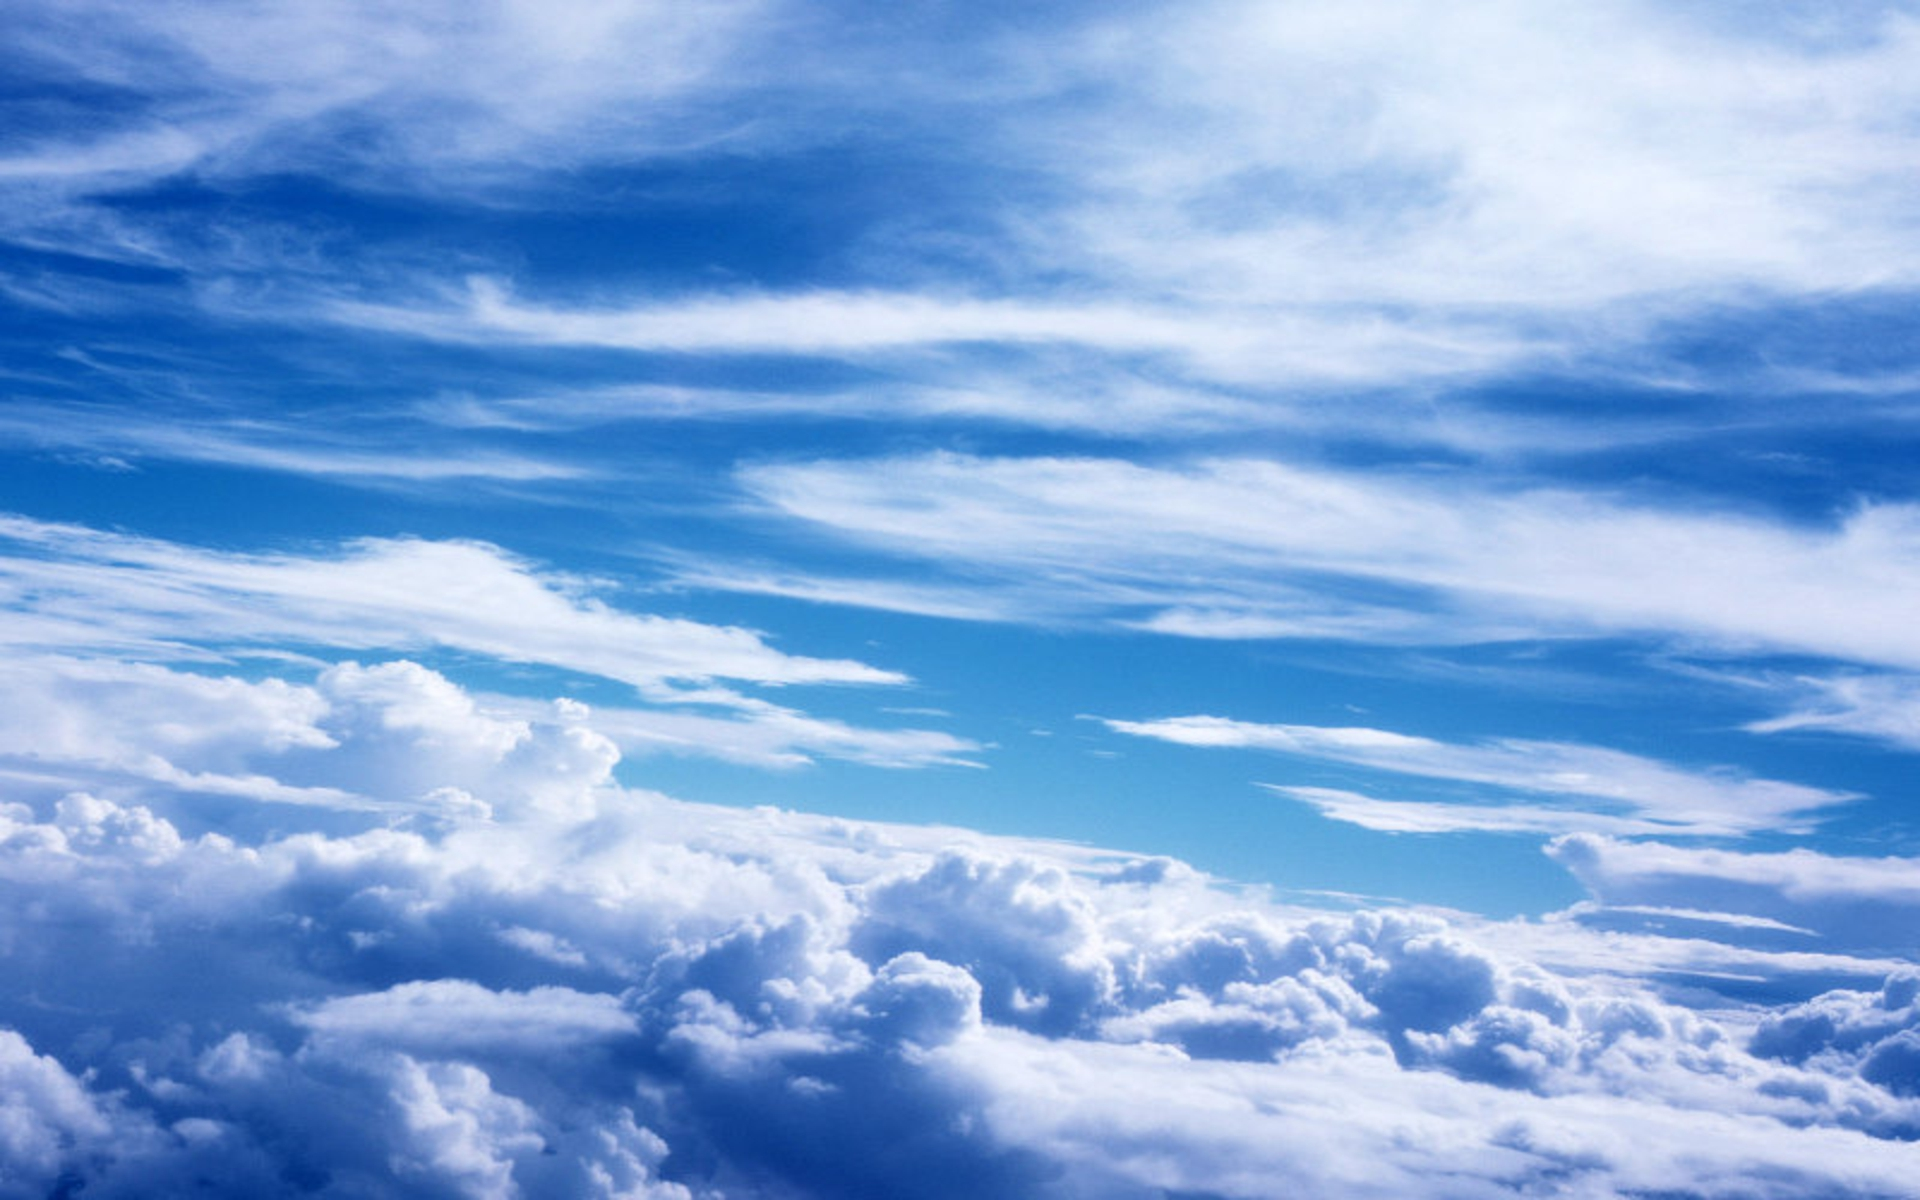 DOWNLOAD: Beautiful Cloud free background 2560 x 1600